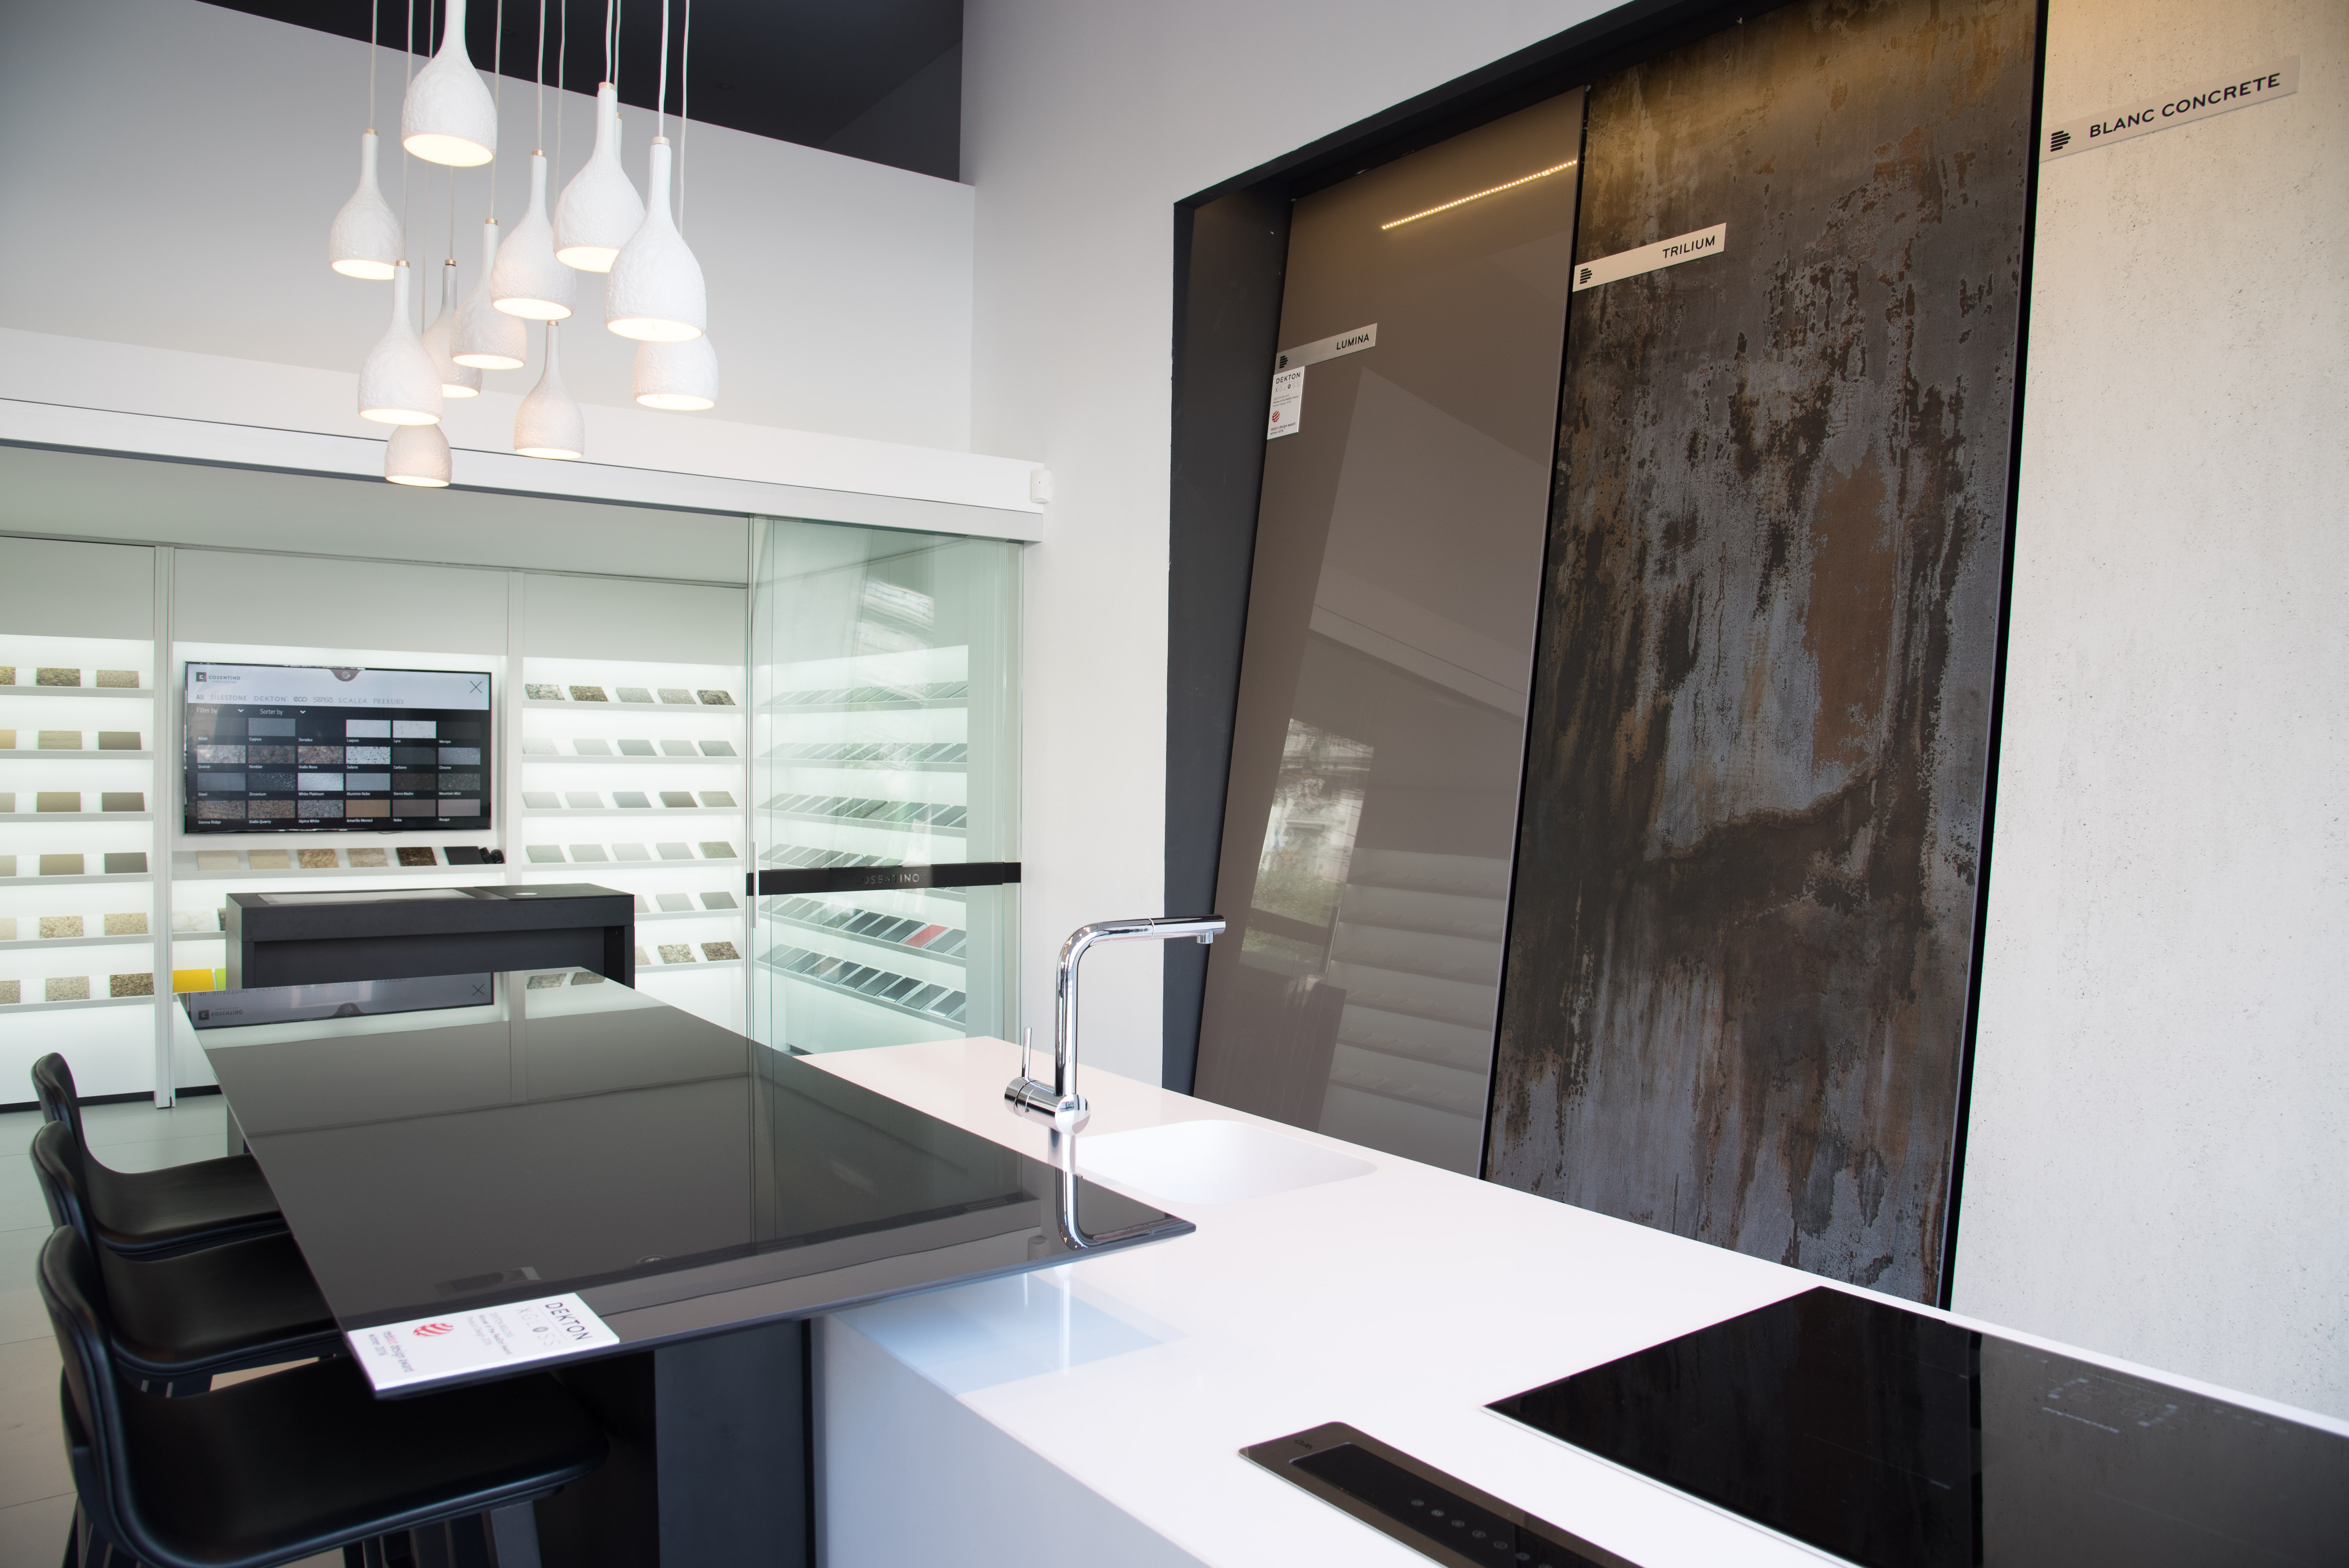 Cosentino group present in milan design week 2016 with its - Silestone showroom ...